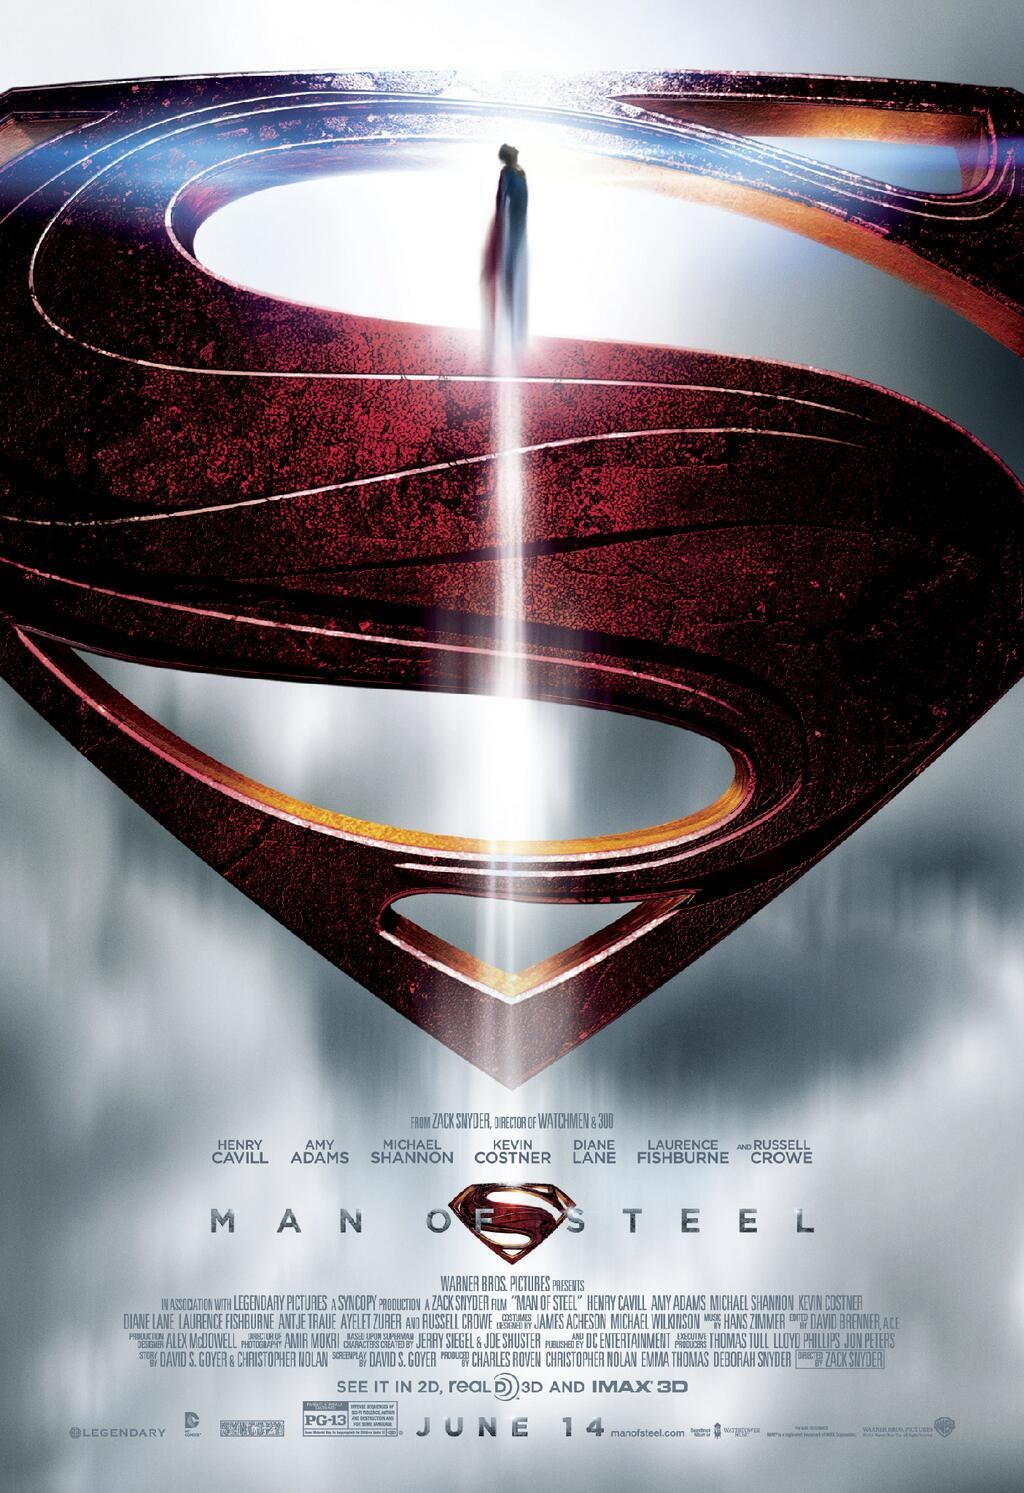 Man of Steel Epic Logo Poster Epic New Man of Steel Movie Poster Hits